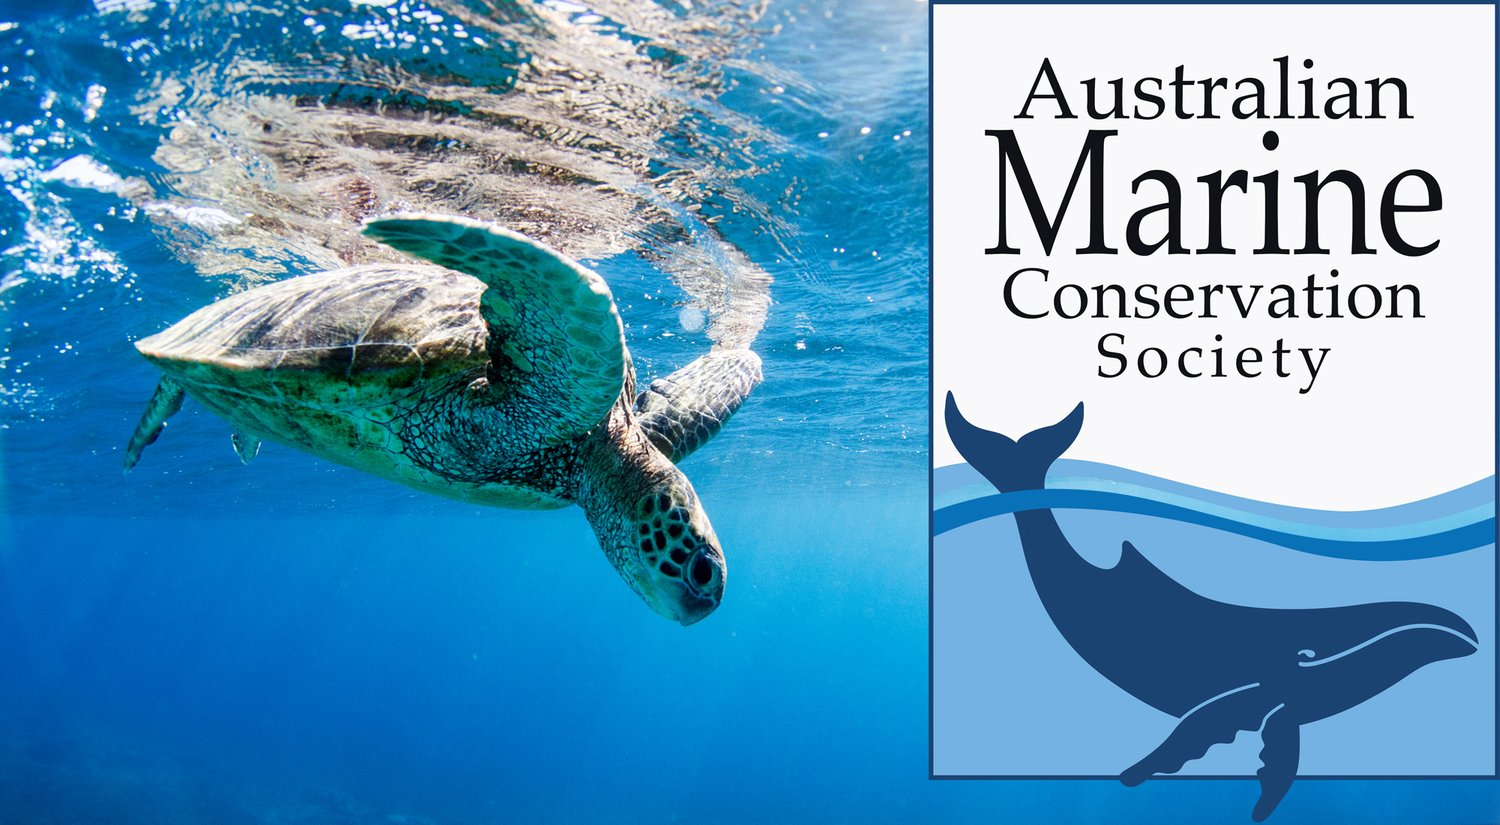 RIPPLE EFFECT the change Australian Marine Conservation Society (AMCS) support statement - Sea Turtle diving into blue Australian waters